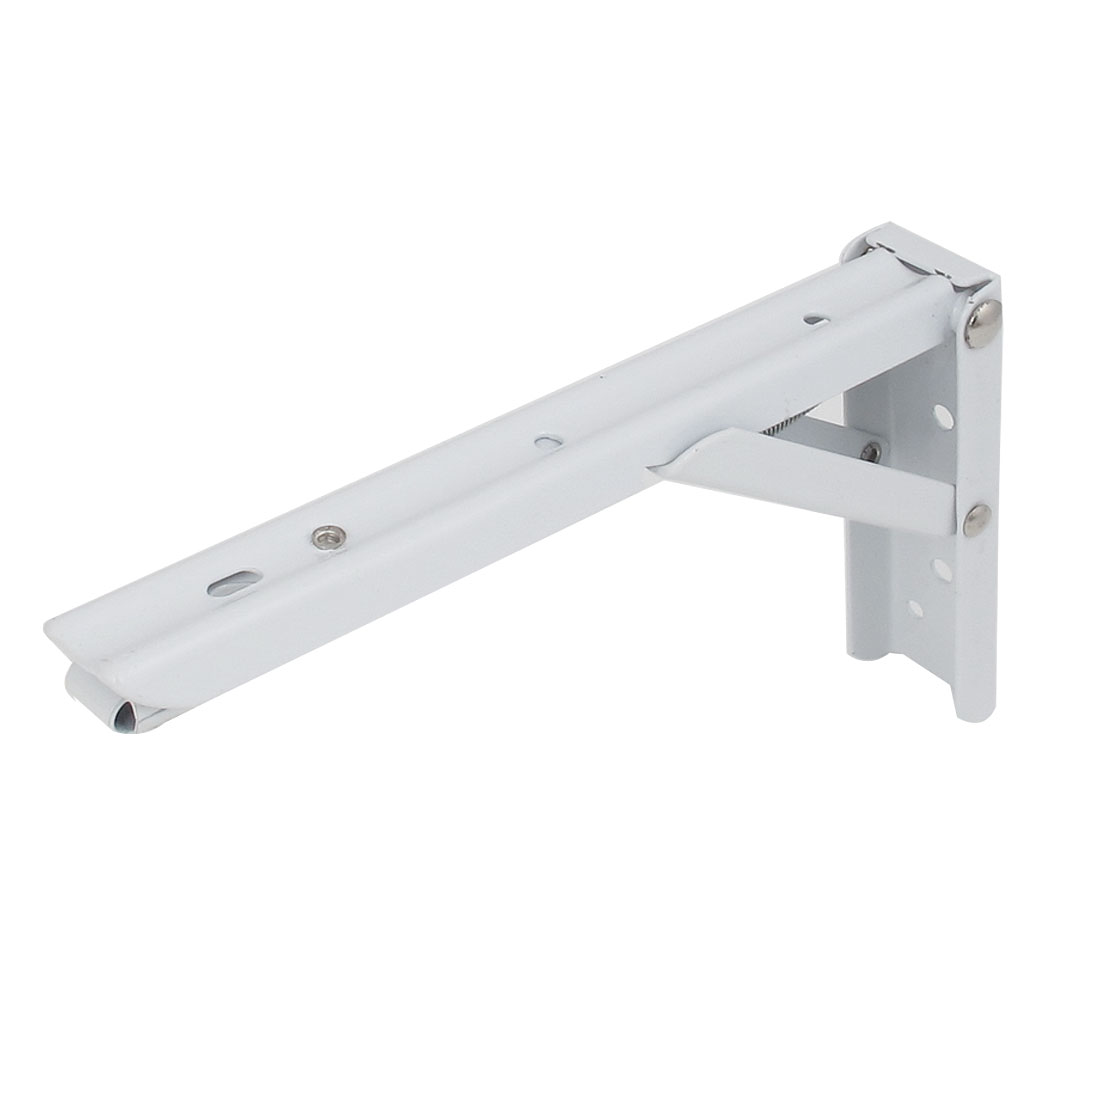 20cmx11.5cm L Shaped Metal Right Angle Folding Shelf Bracket White